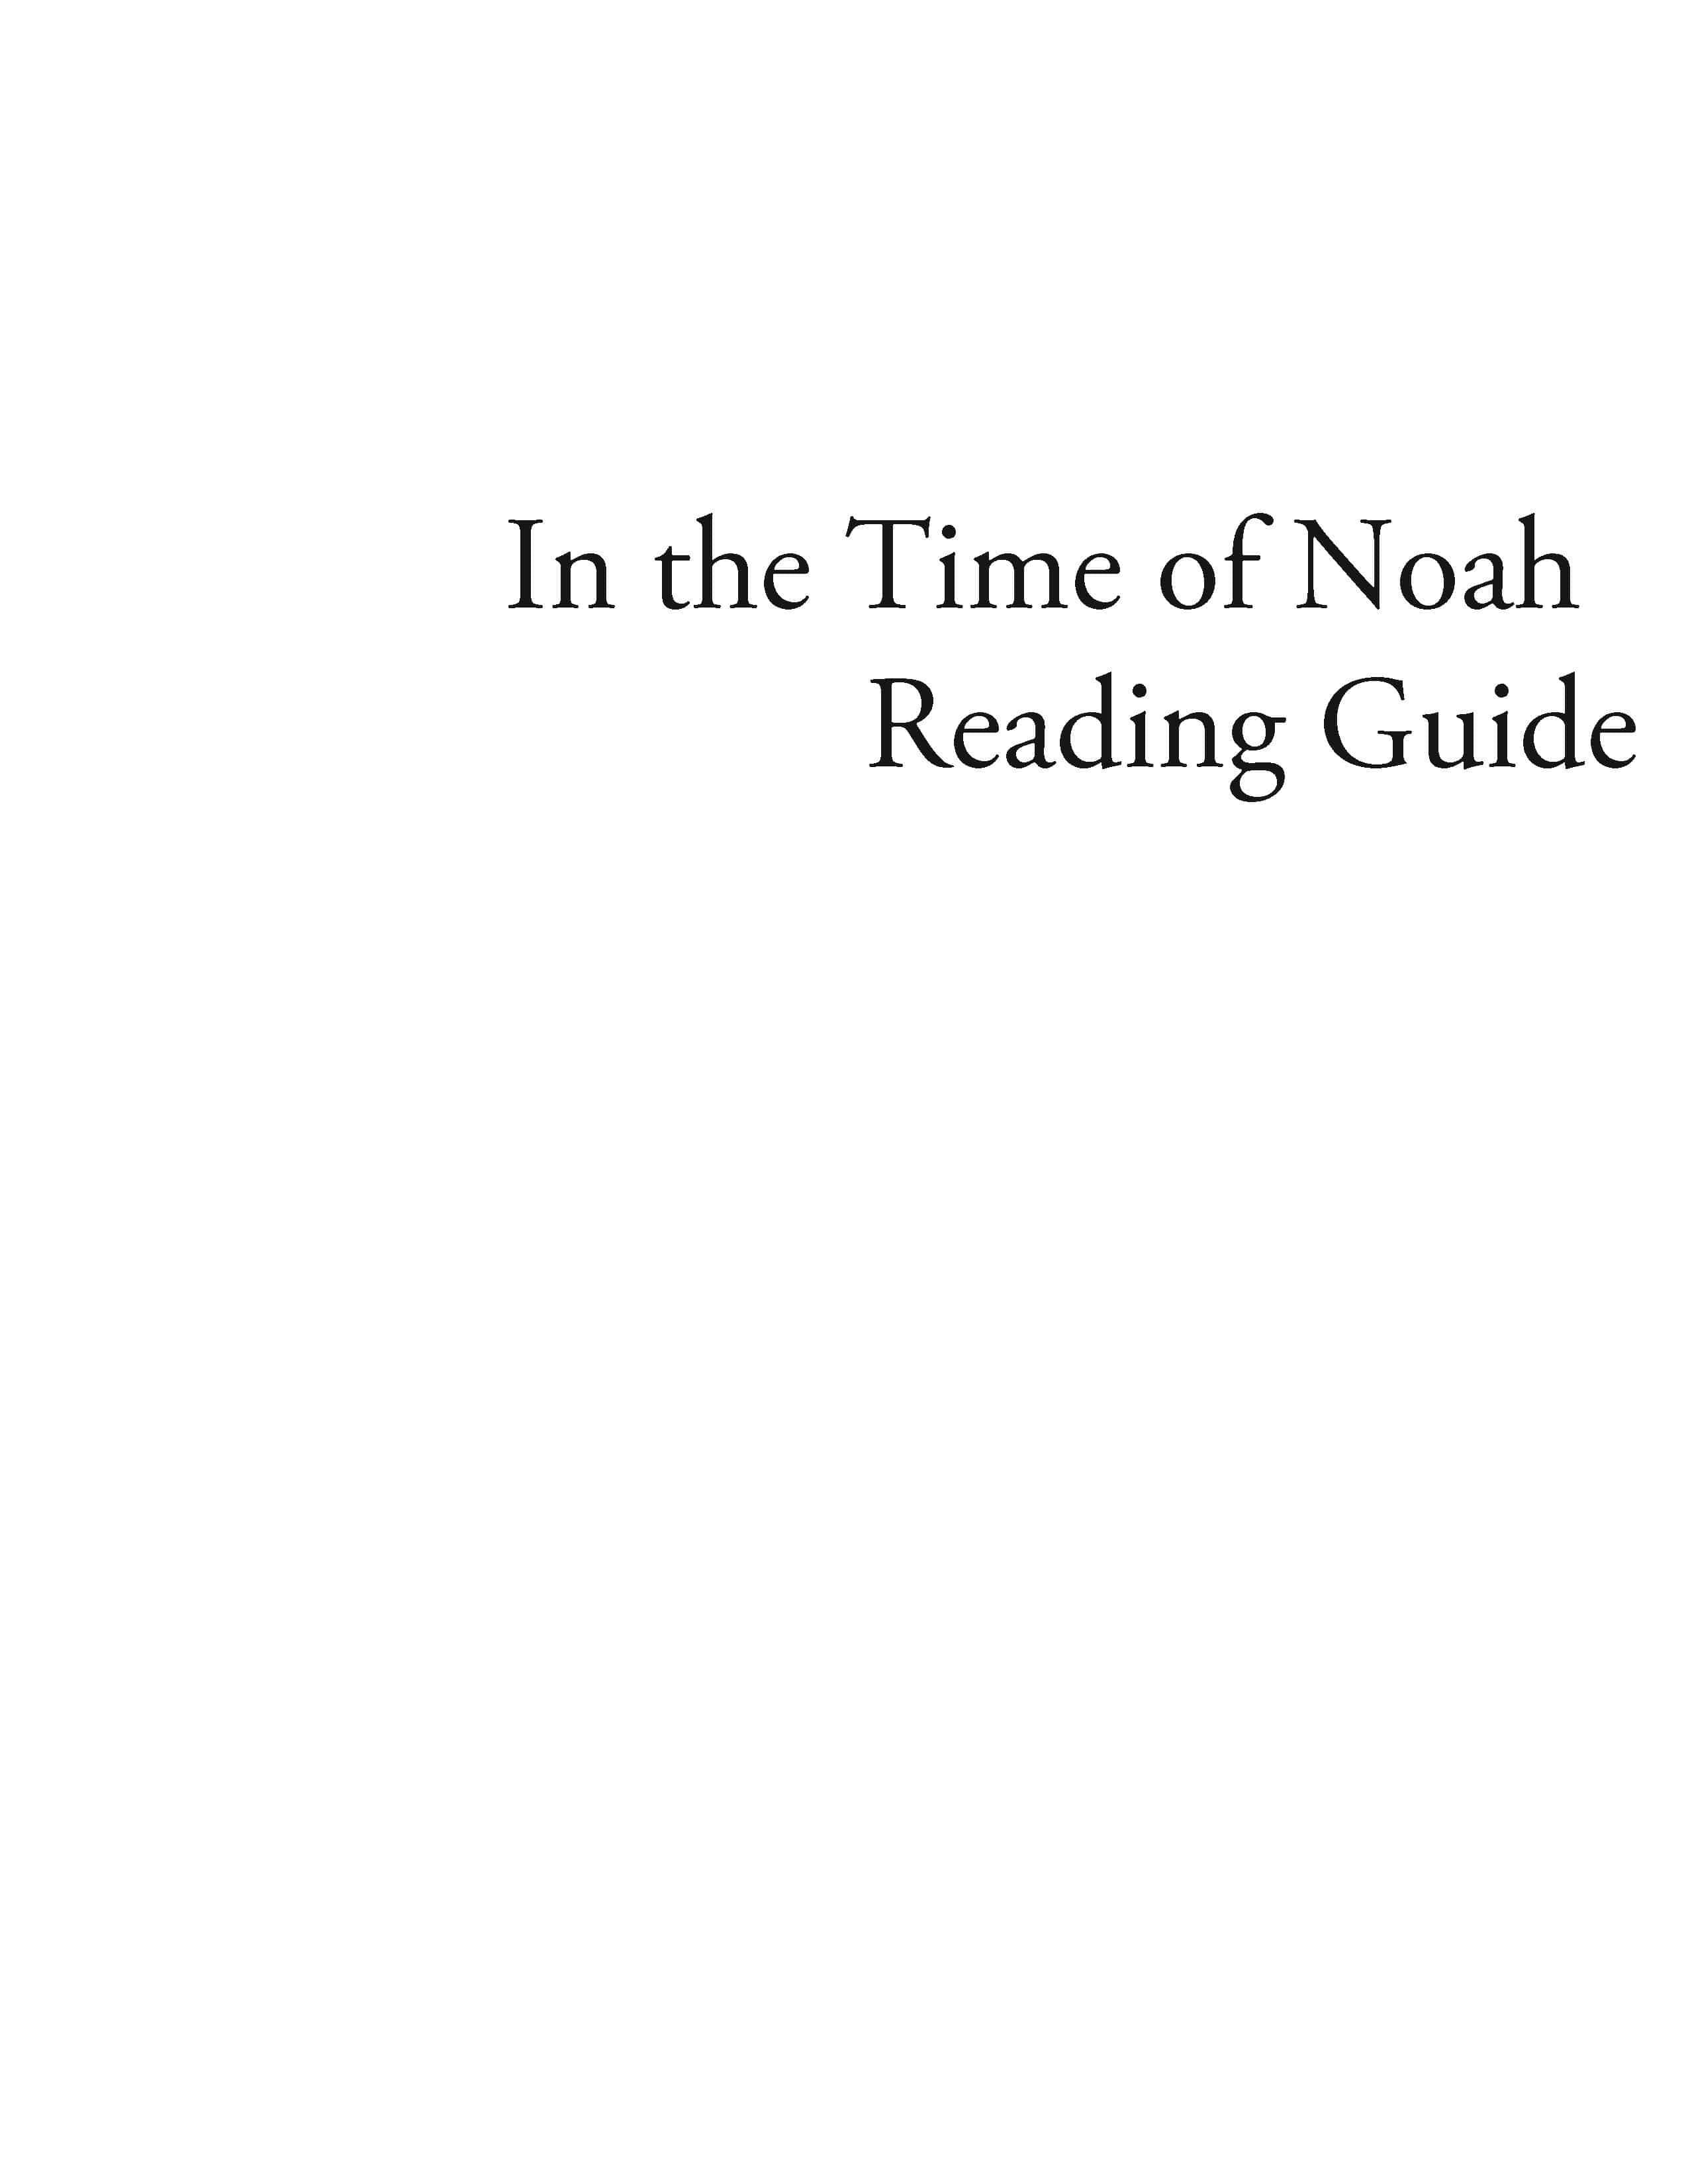 In the Time of Noah – Reading Guide (Download)